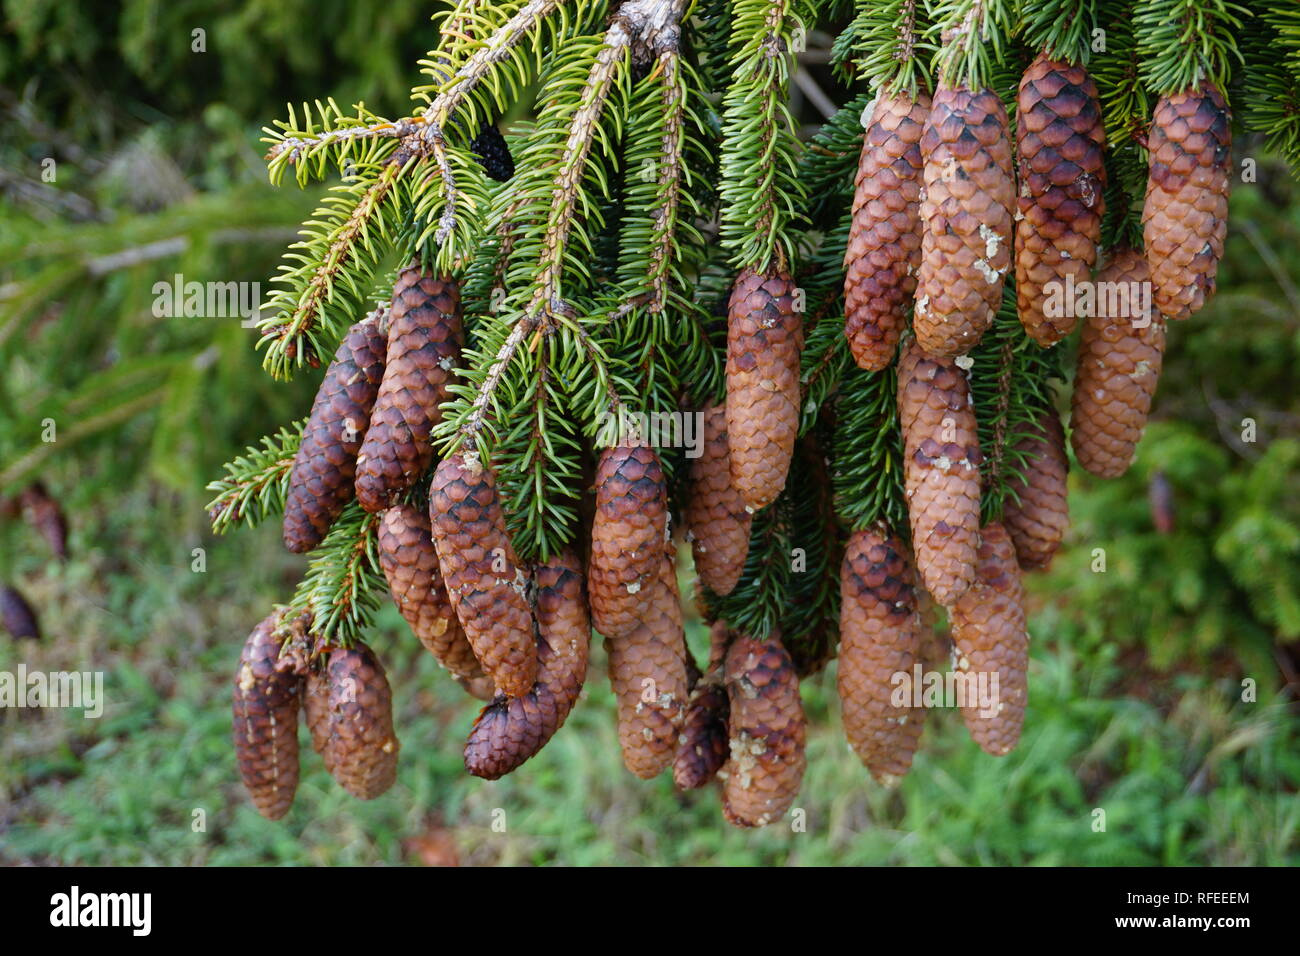 Close up of a cluster of small pinecones hanging from the pine tree in the forest - Stock Image